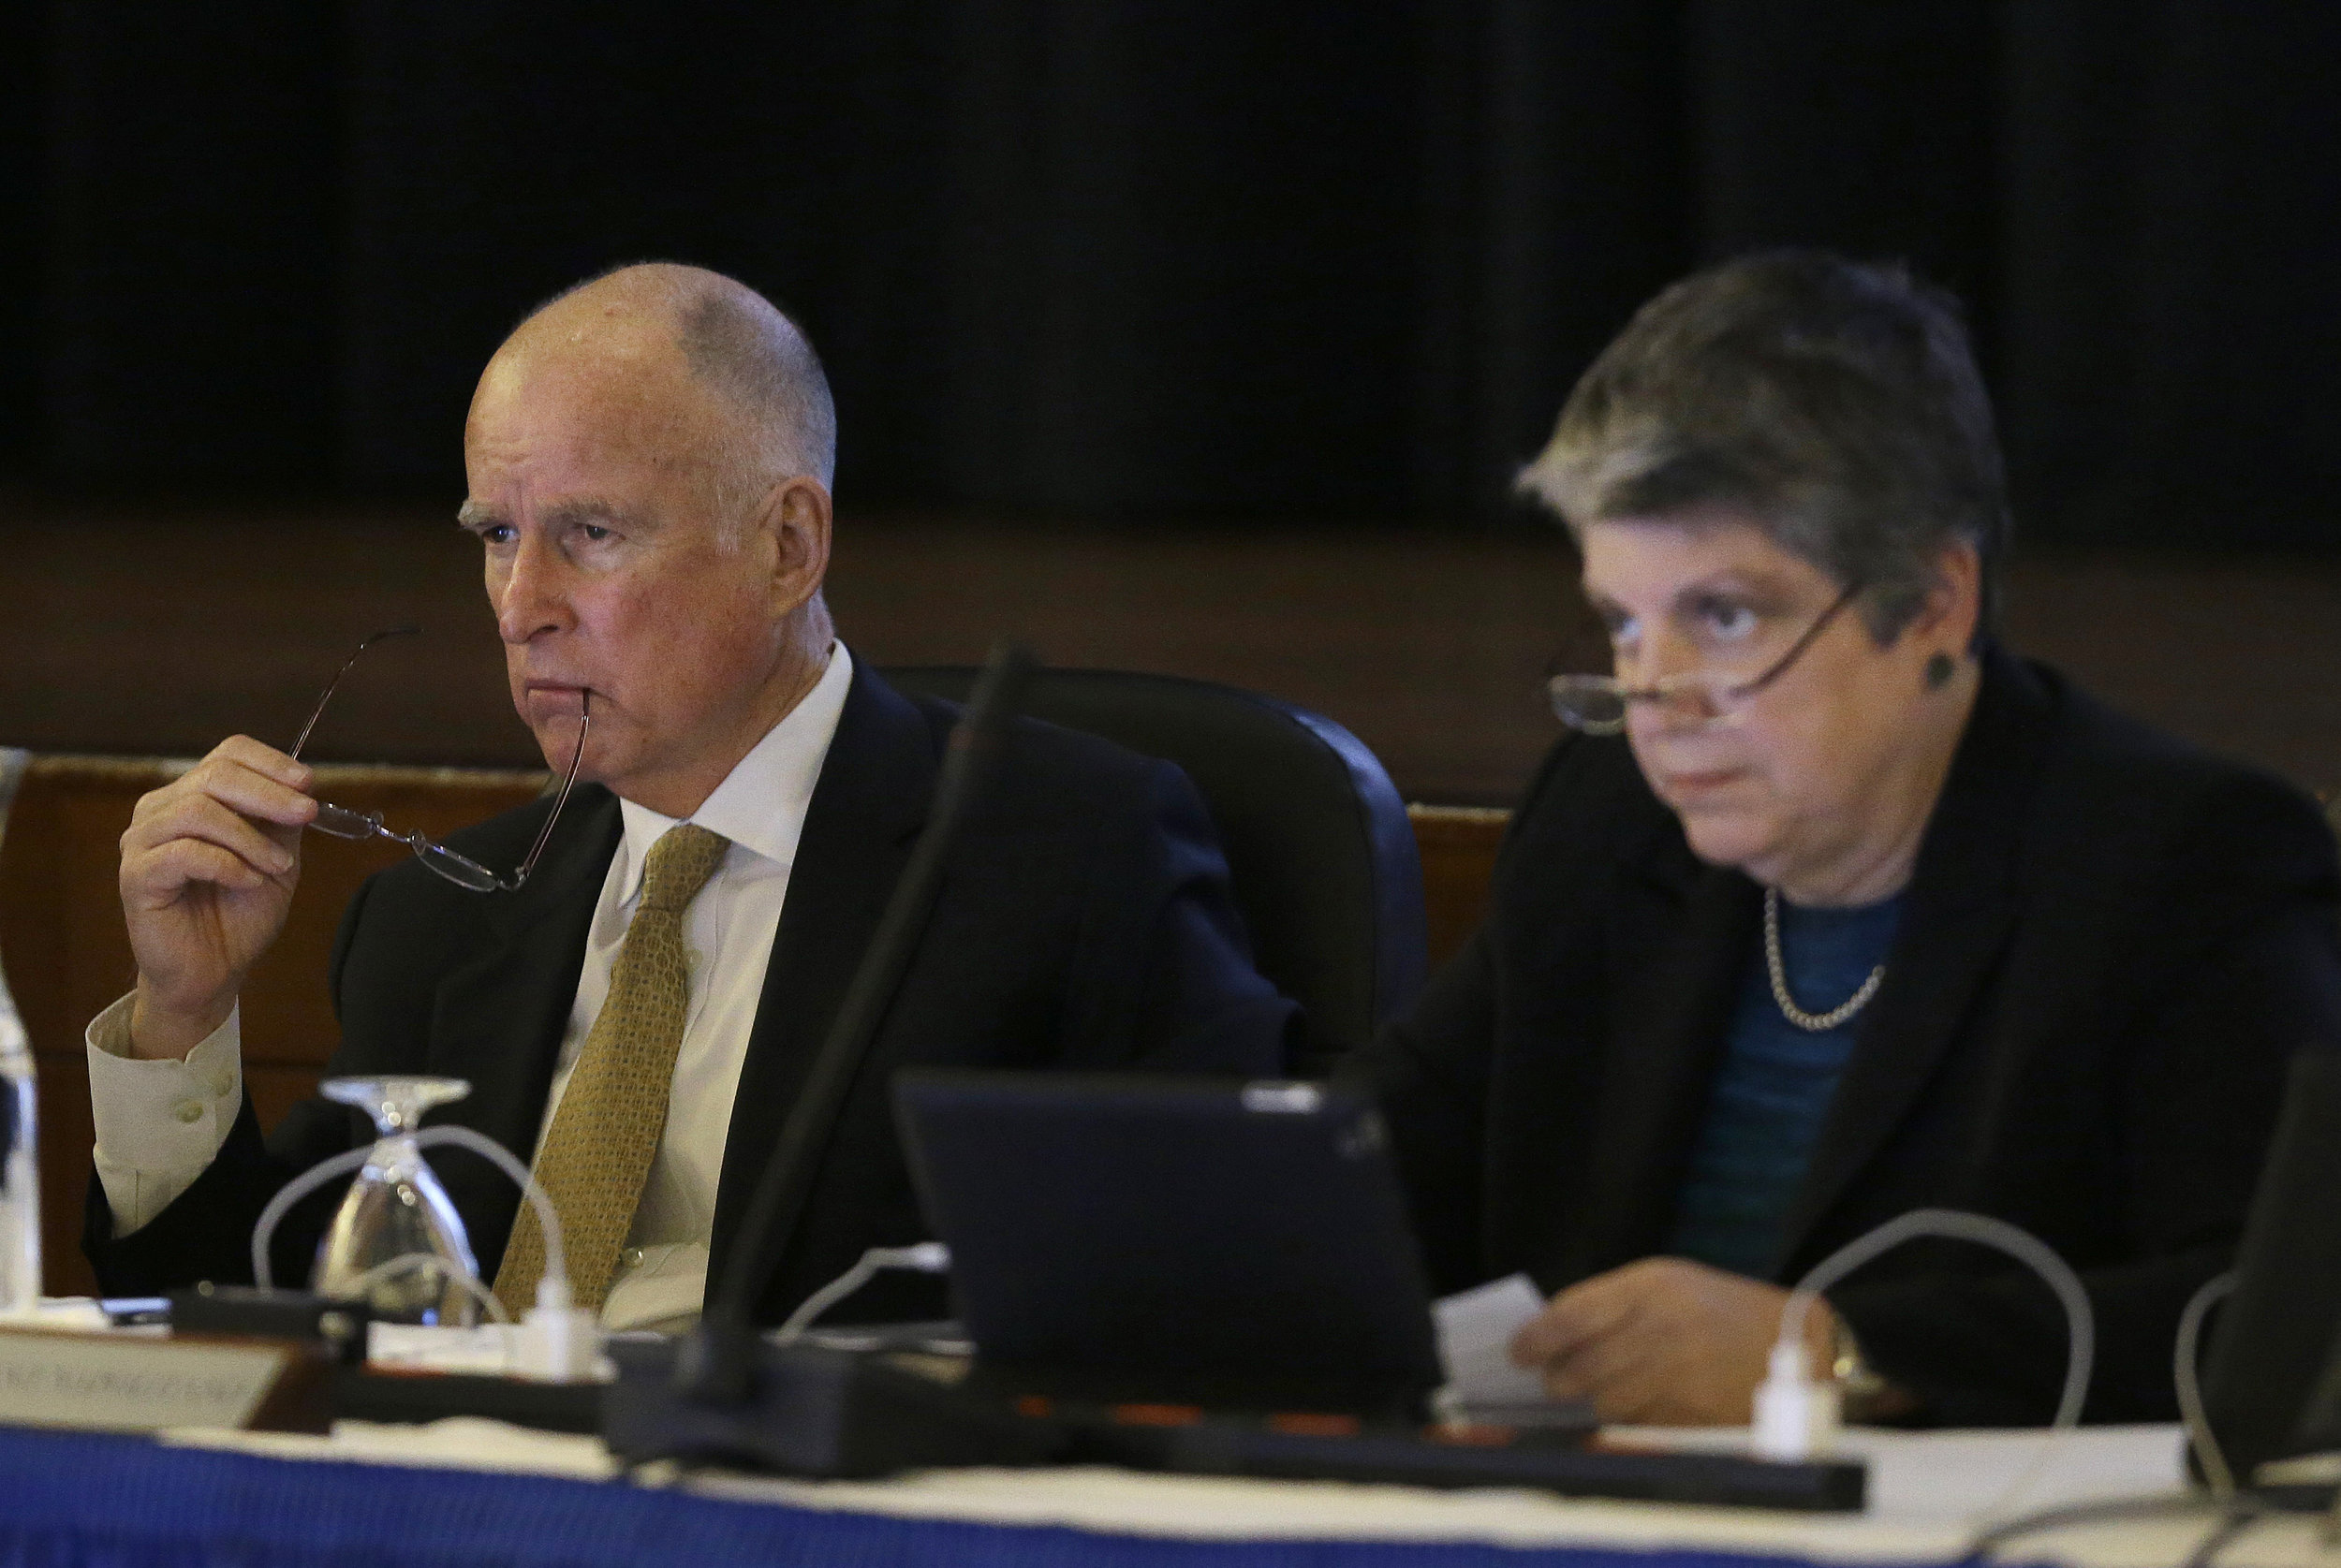 In this file photo from Wednesday, Jan. 22, 2014, California Gov. Jerry Brown, left, and University of California president Janet Napolitano listen to speakers during a UC Board of Regents meeting in San Francisco. Legislative analysts in Sacramento are releasing their review of Brown's proposed higher education budget. The recommendations may figure into the ongoing negotiations over the University of California's finances, which so far have had lawmakers and the governor taking a dim view of UC President Janet Napolitano's plan to expand undergraduate enrollment by raising tuition. (AP Photo/Jeff Chiu)